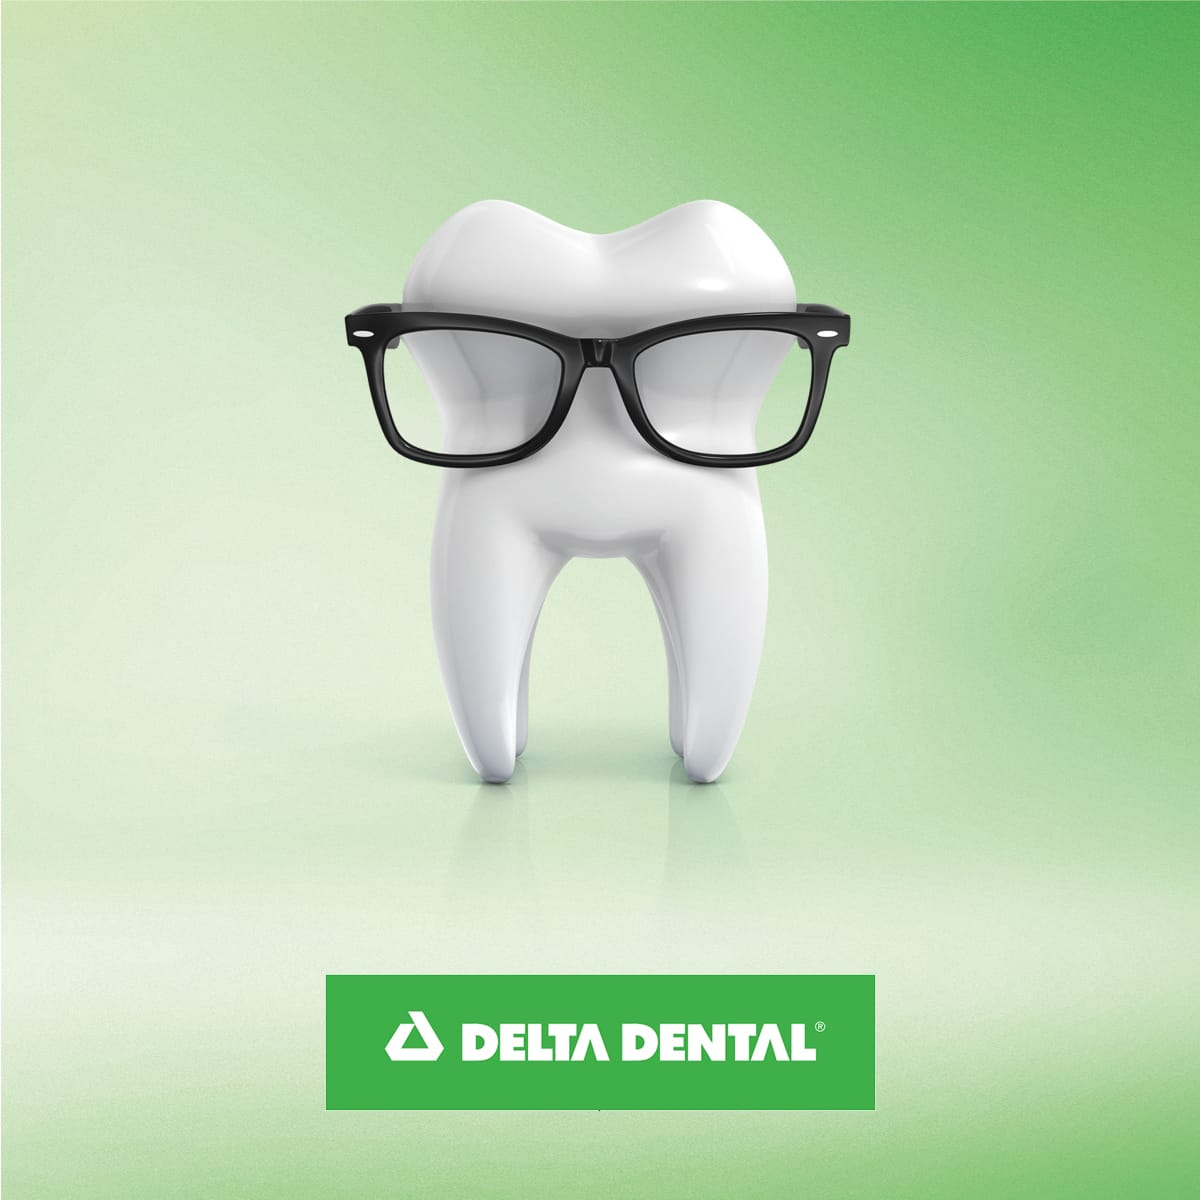 Delta Dental of Illinois Foundation Seeking Applications for $100,000 Wisdom Tooth Award